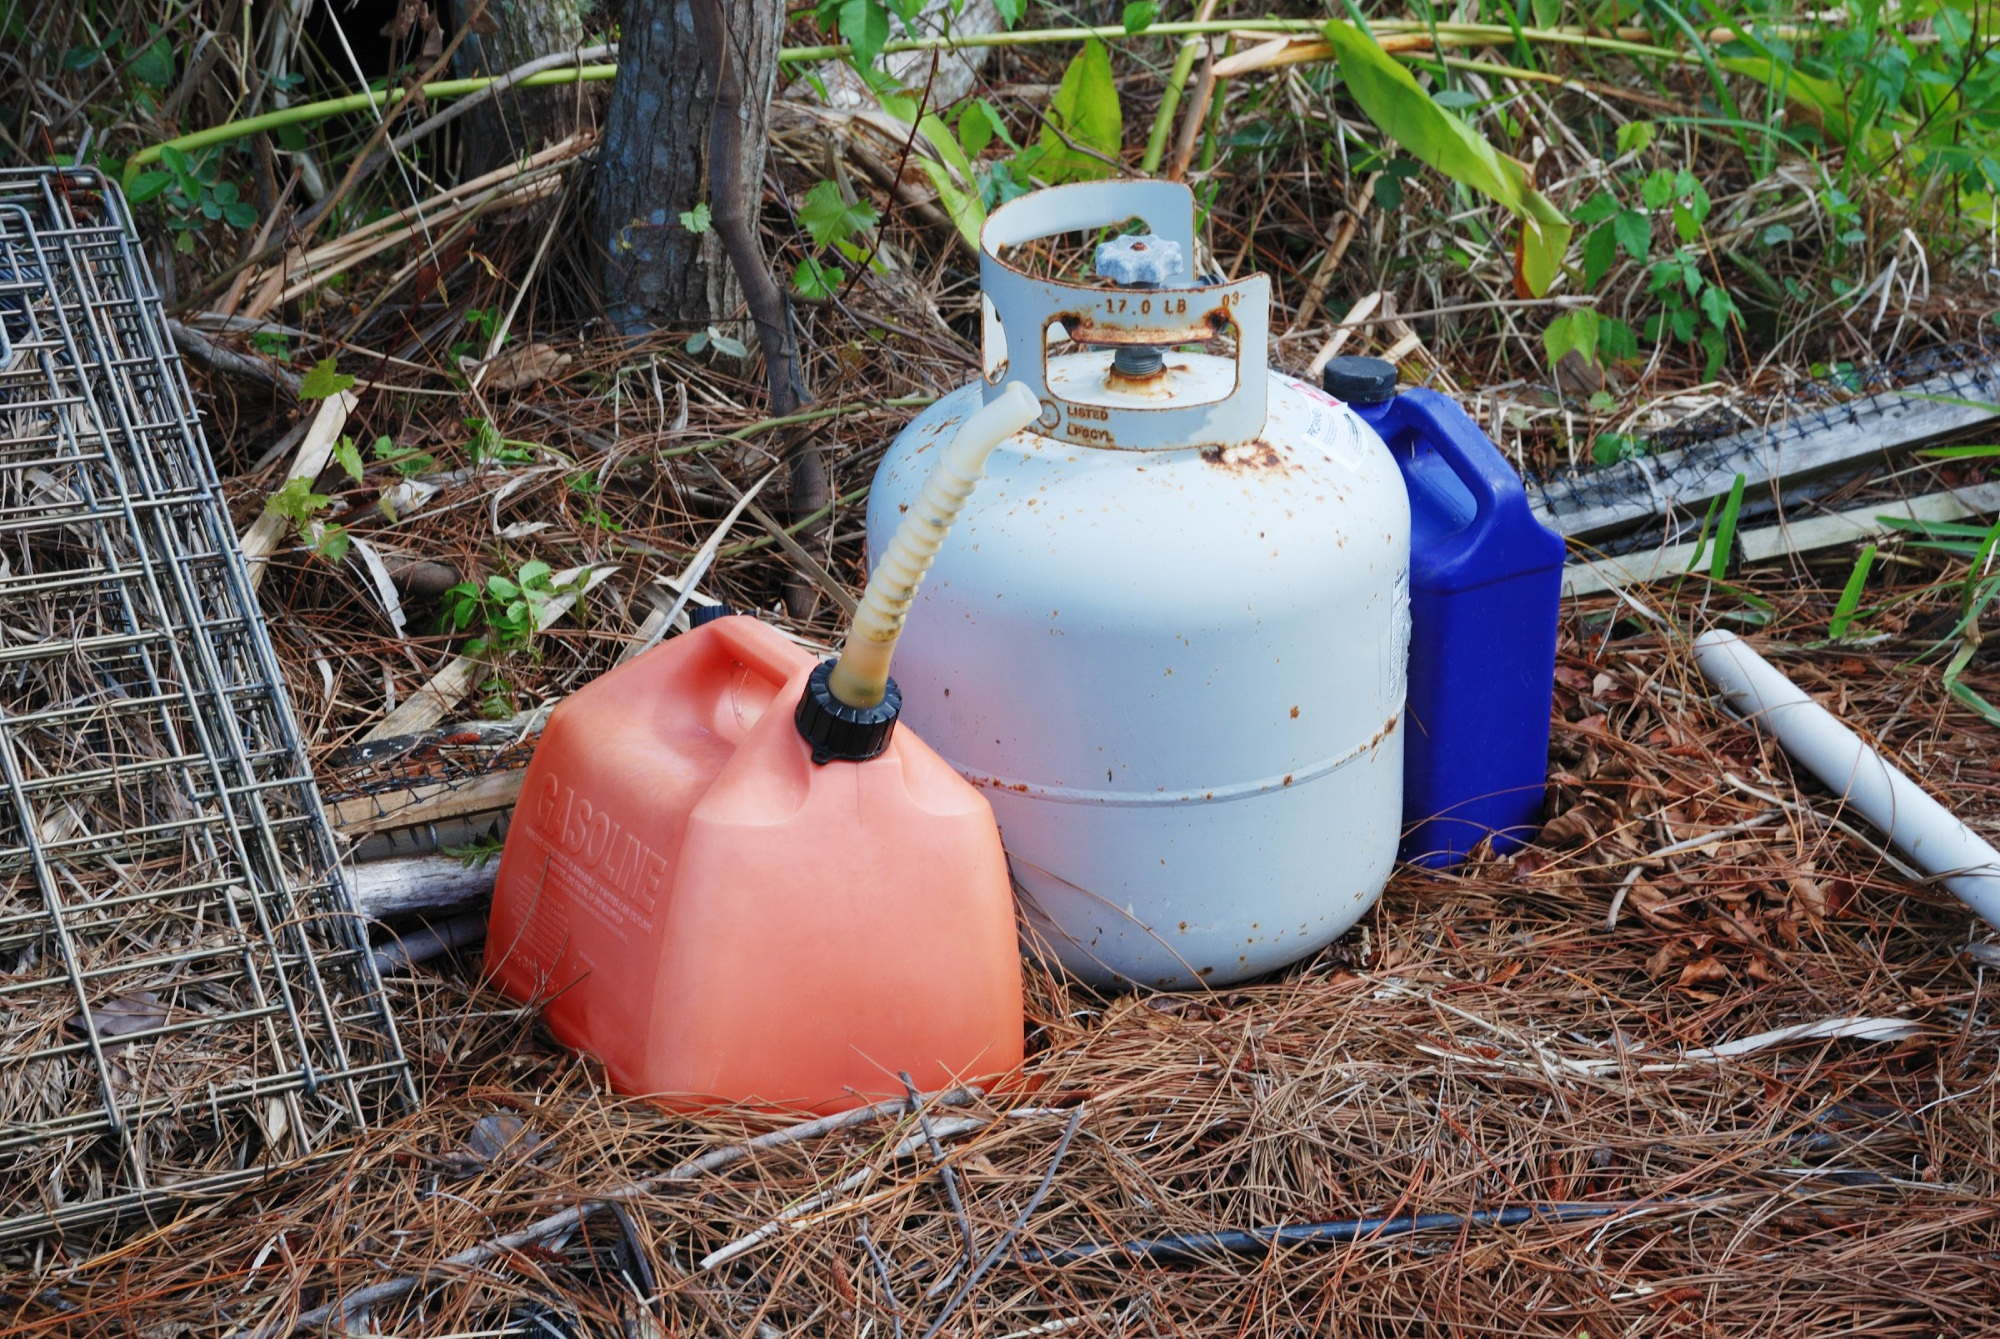 City of Joondalup collects about 21.5 tonnes of hazardous waste in recent collection